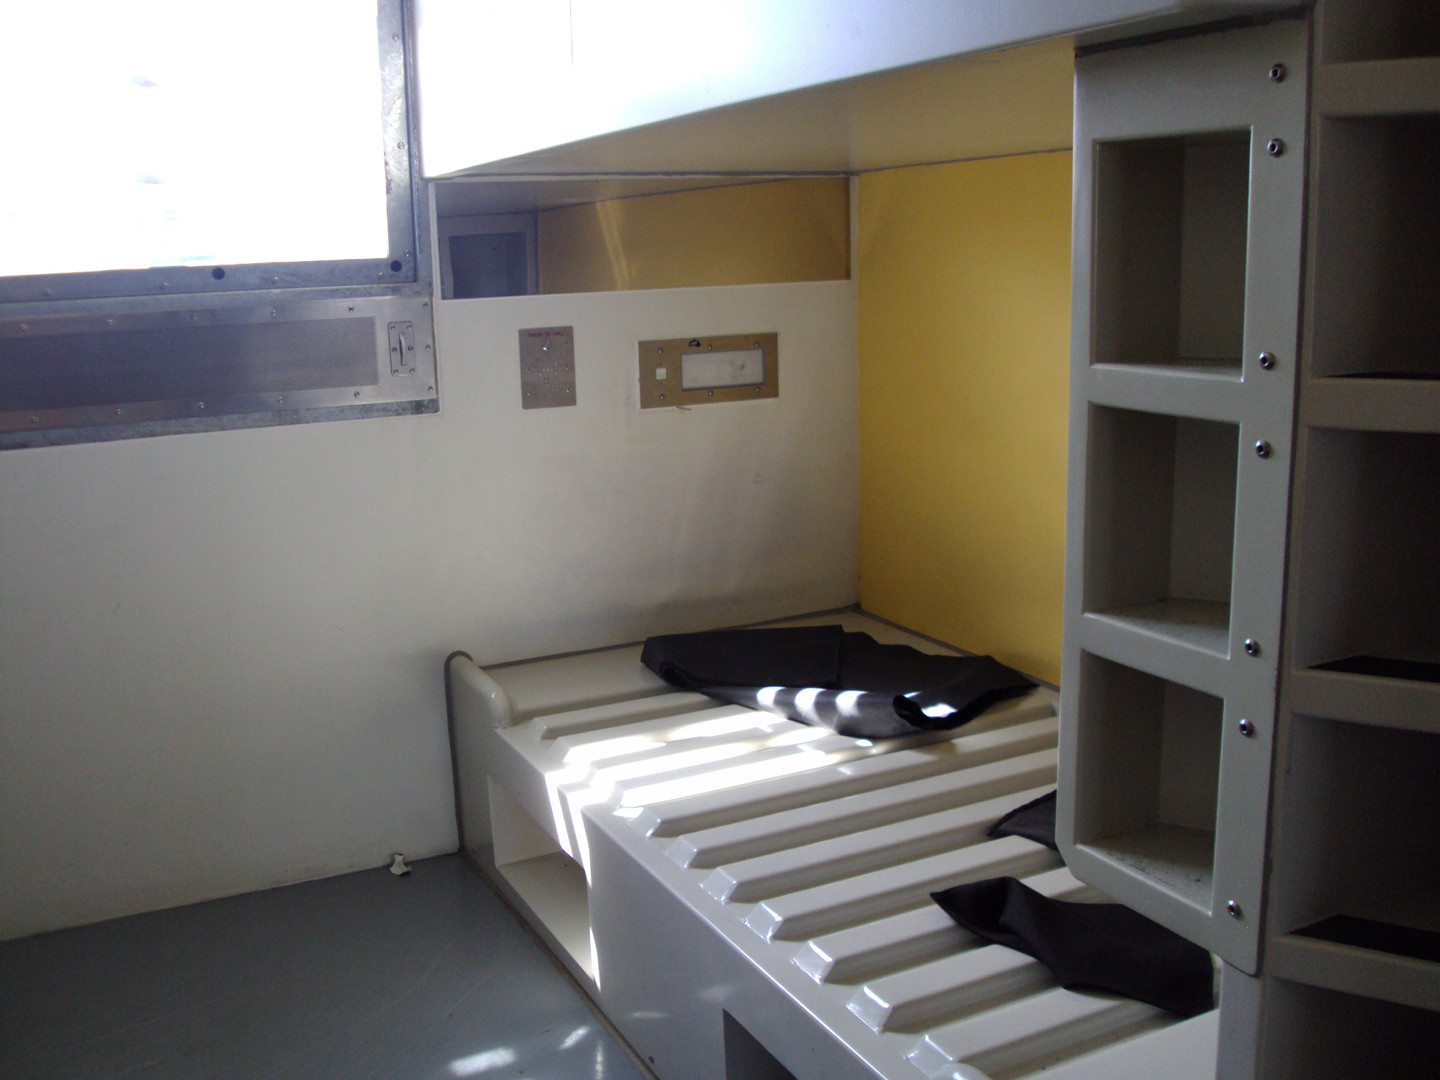 Prison Bed and Shelving